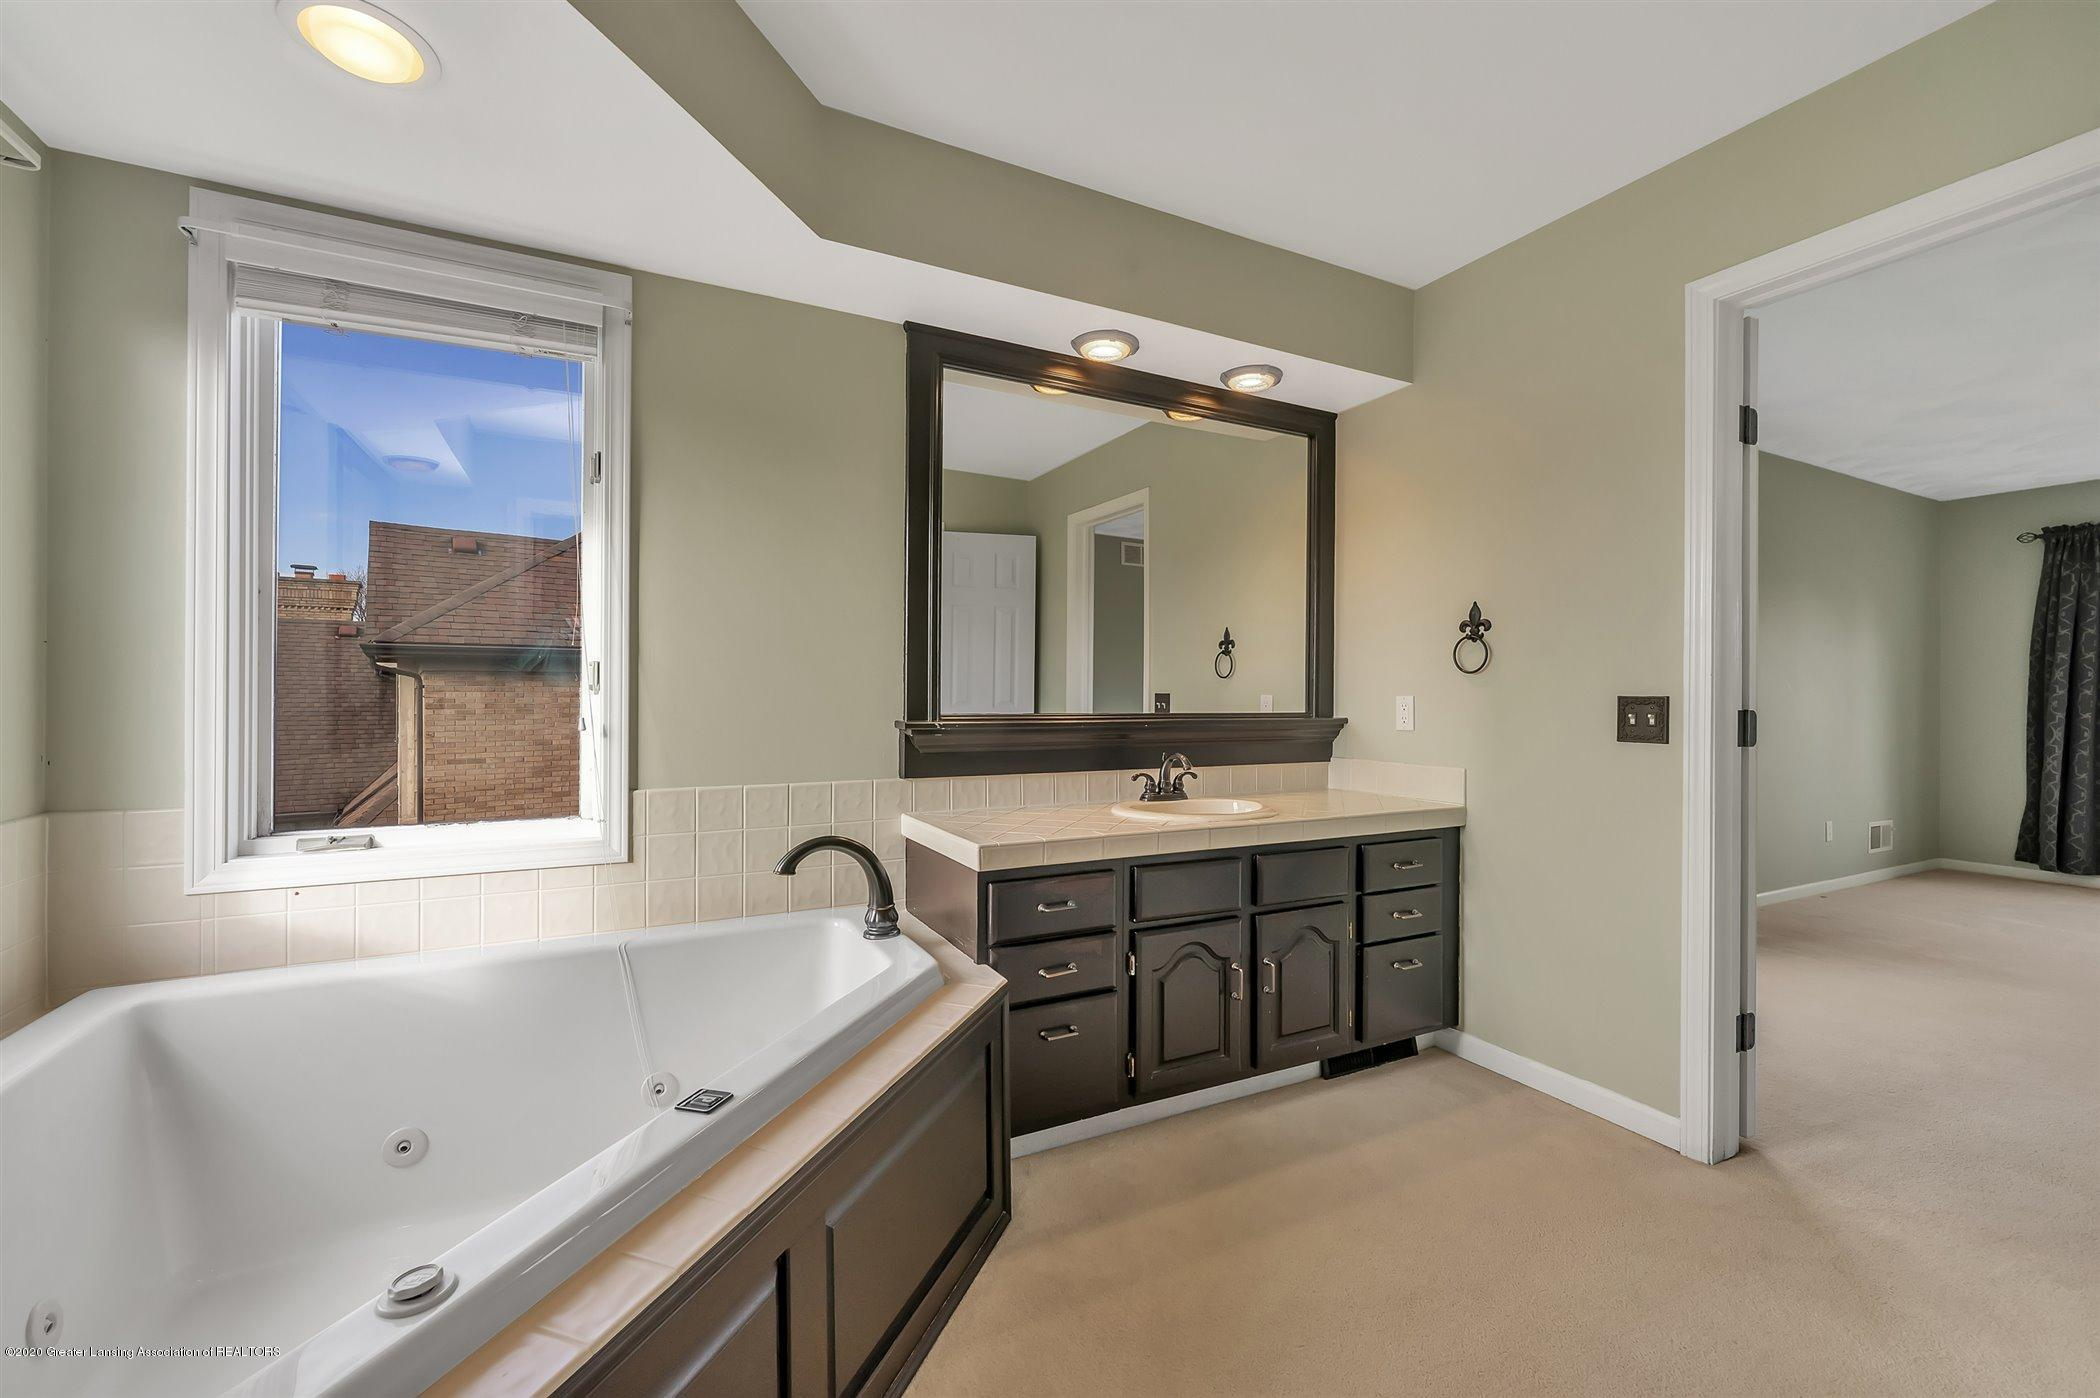 6261 Windrush Ln - (27) SECOND FLOOR Master Bathroom - 27